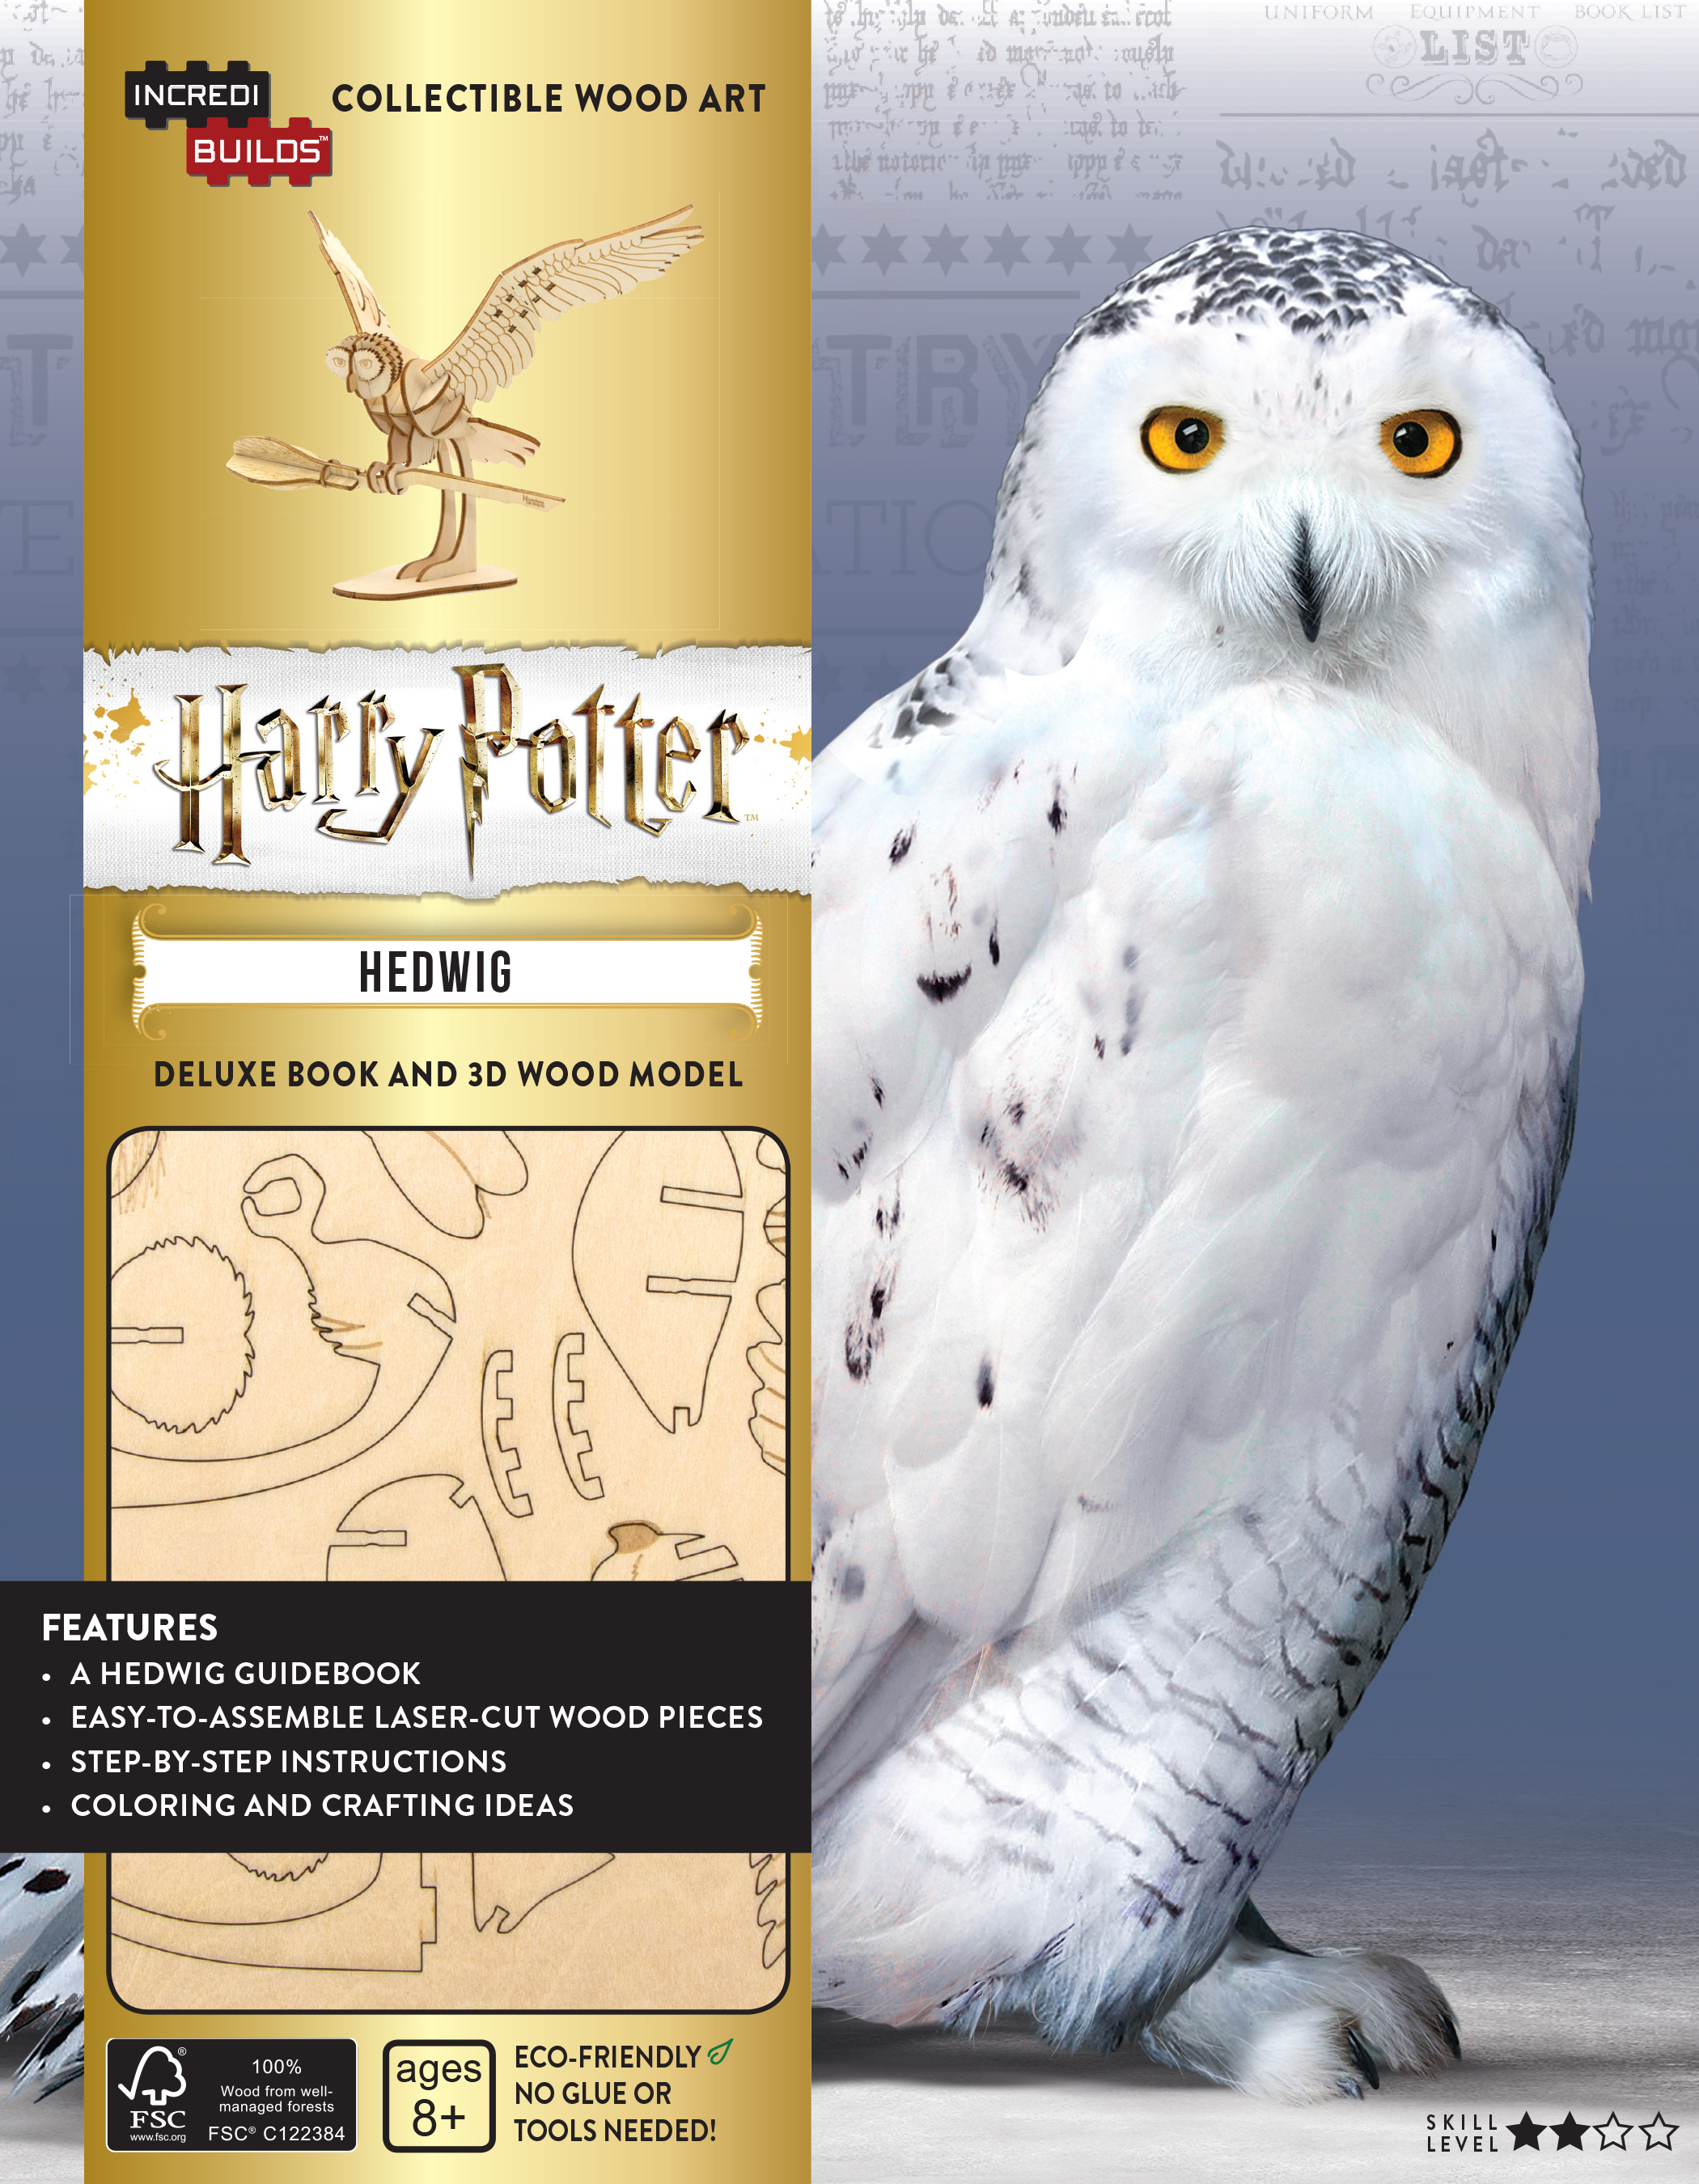 You can build your very own Hedwig replica with this magical kit.